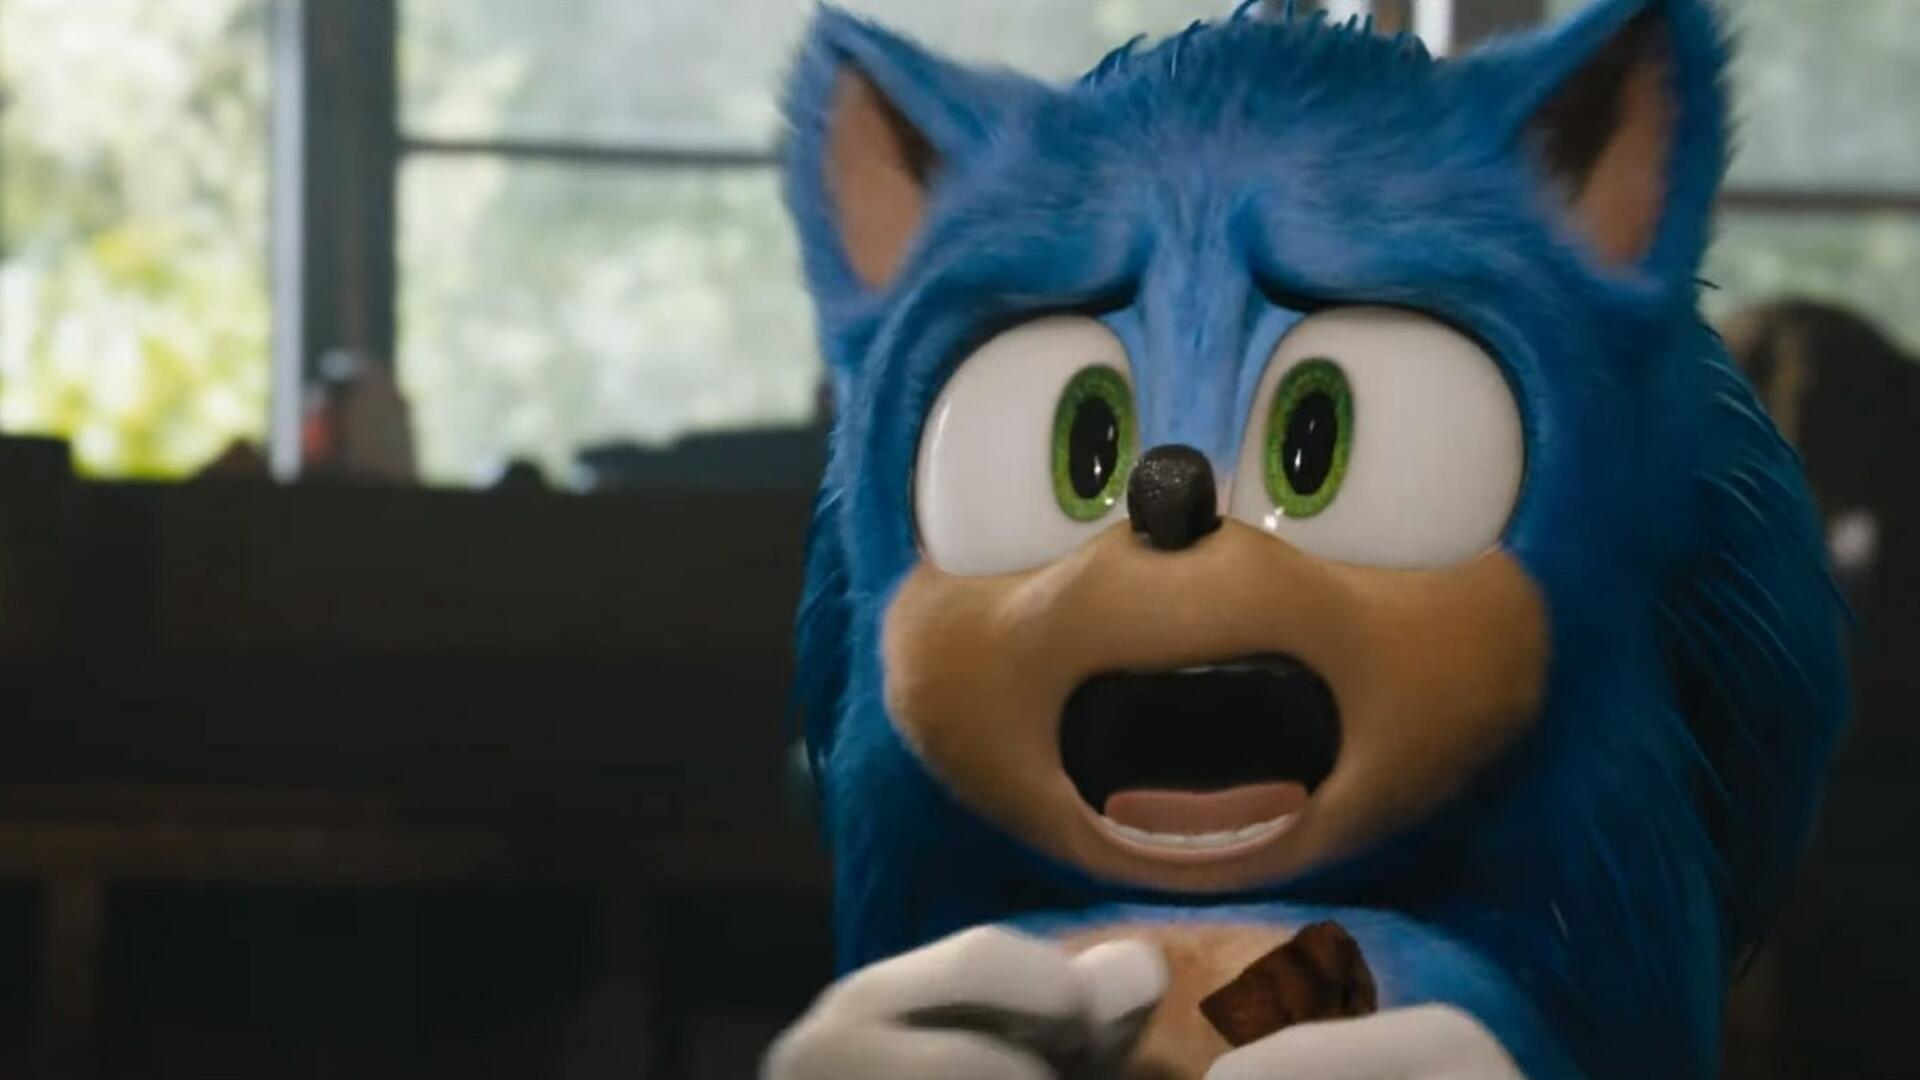 Check Out Sonic's New Look in the Latest Sonic The Hedgehog Movie Trailer